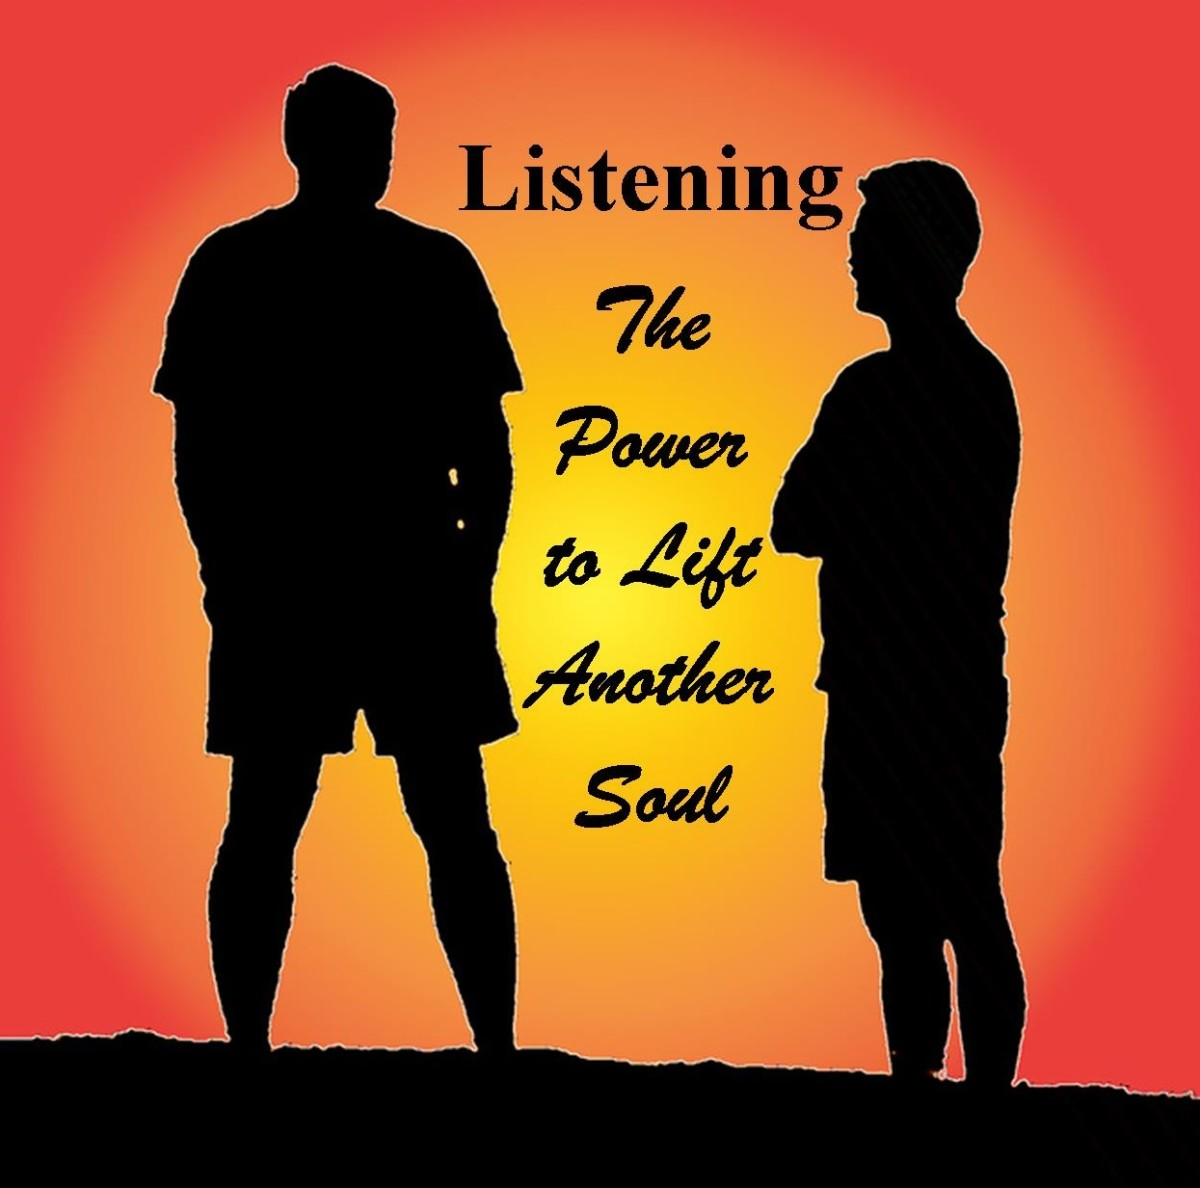 When we really listen, we have the power to lift and strengthen others.